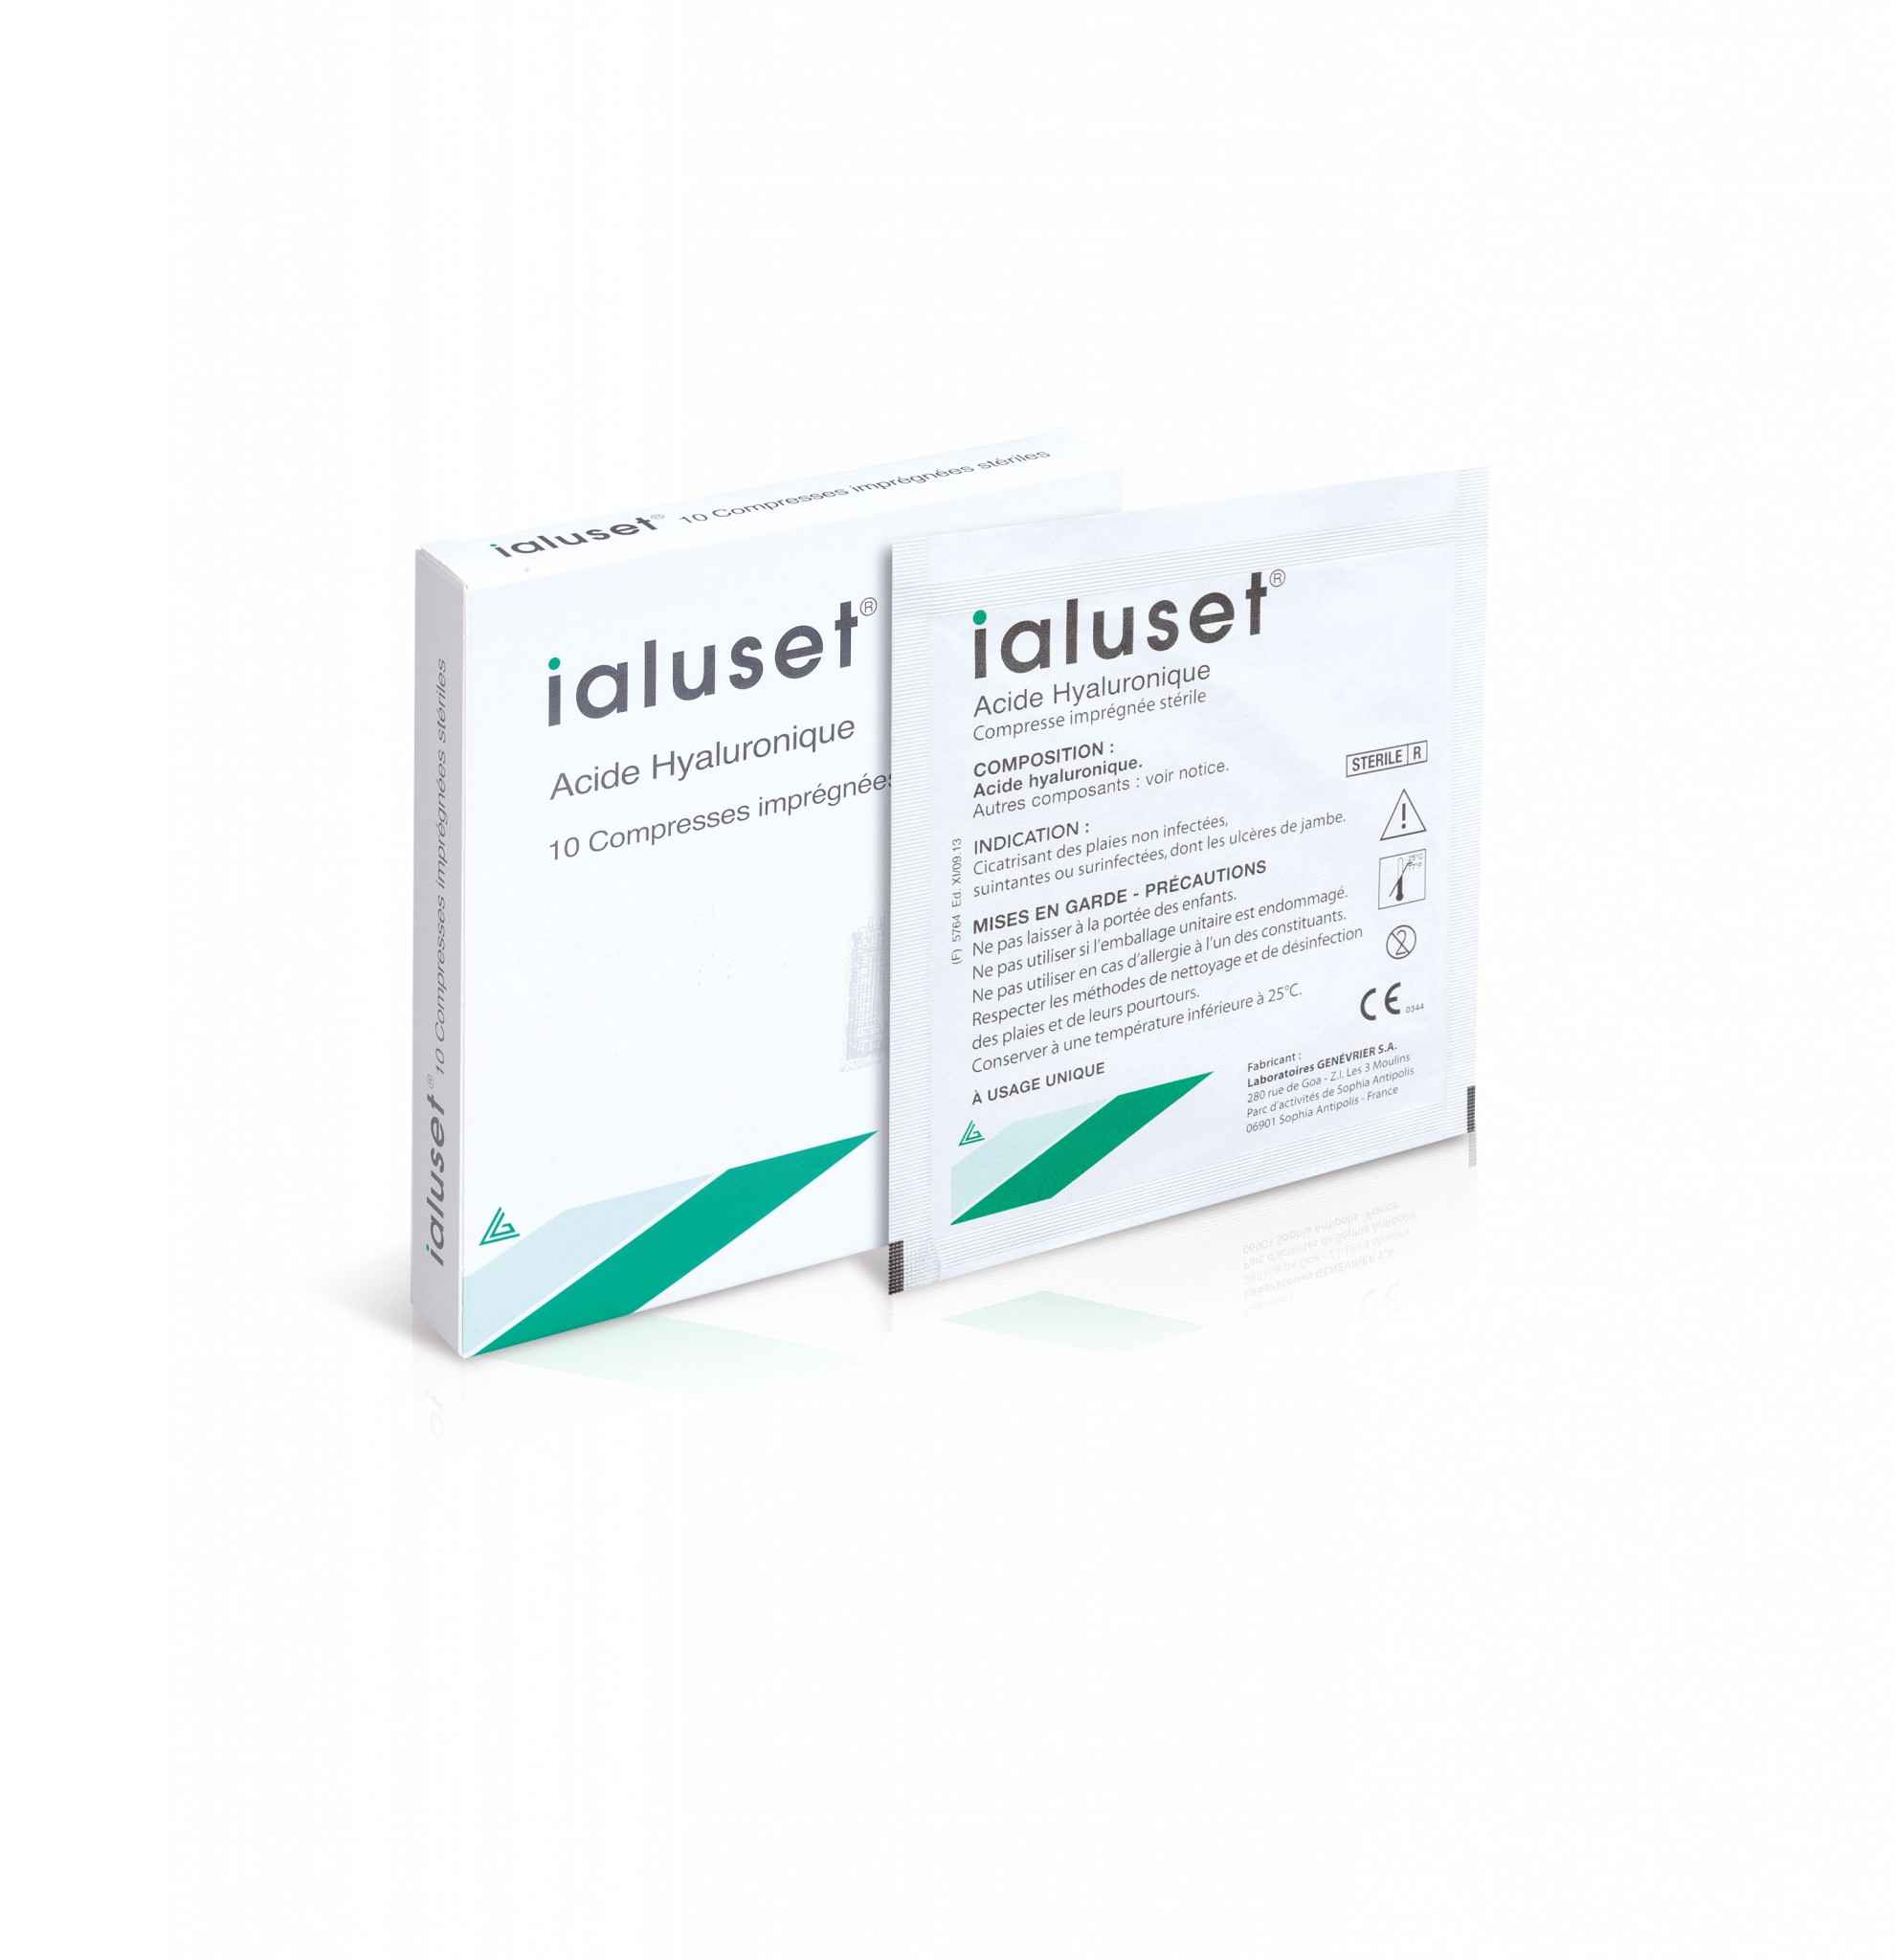 Ialuset® cream and gauze pad (Medical Device